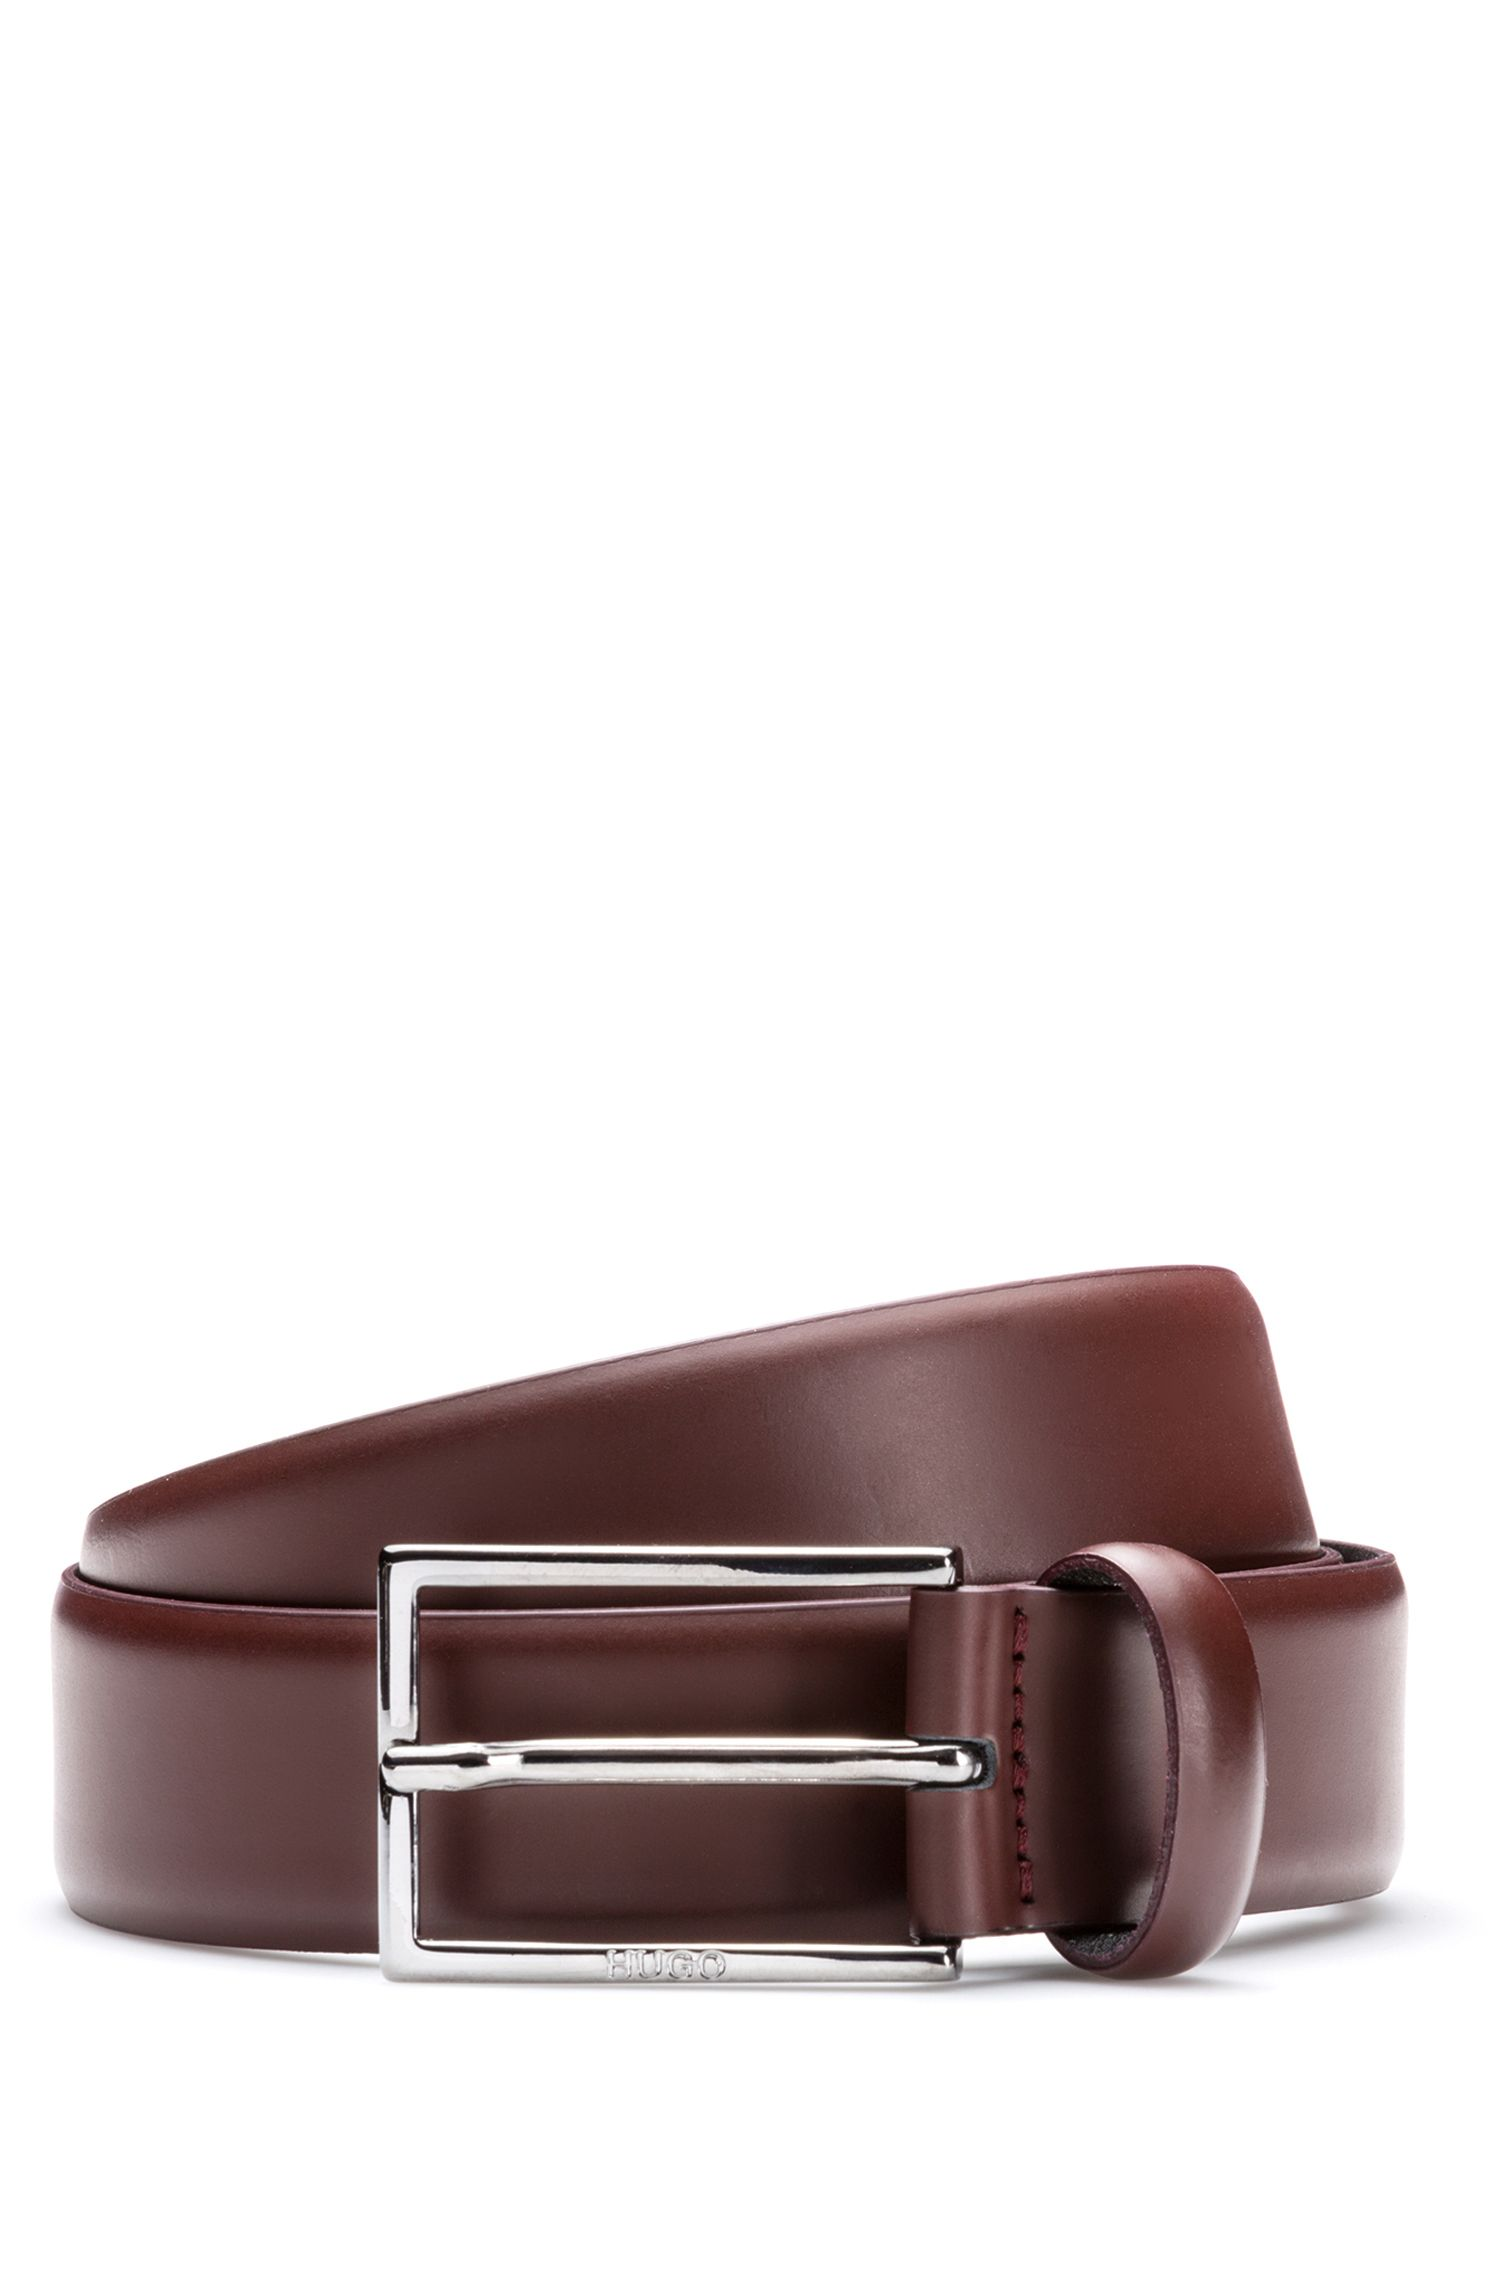 Brush-off leather belt with polished gunmetal hardware